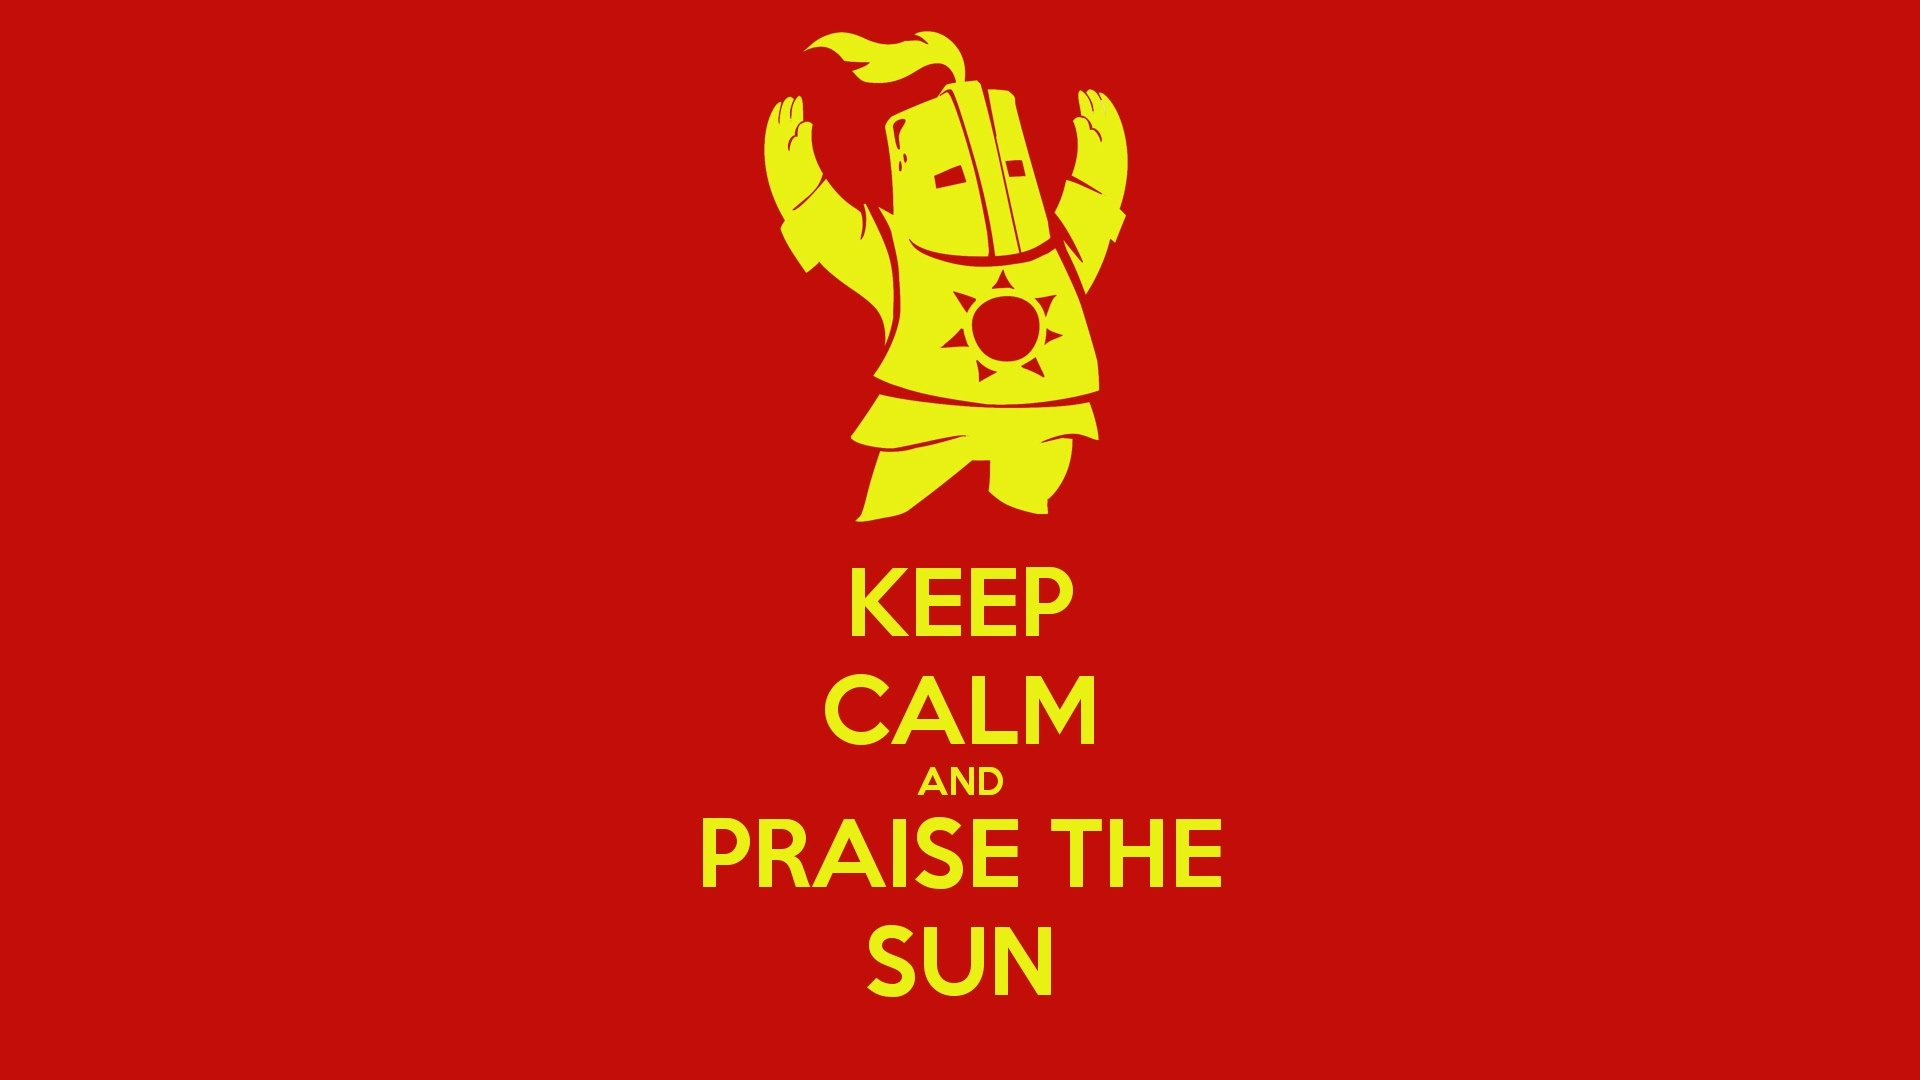 Praise The Sun Wallpaper on samsung galaxy wallpaper